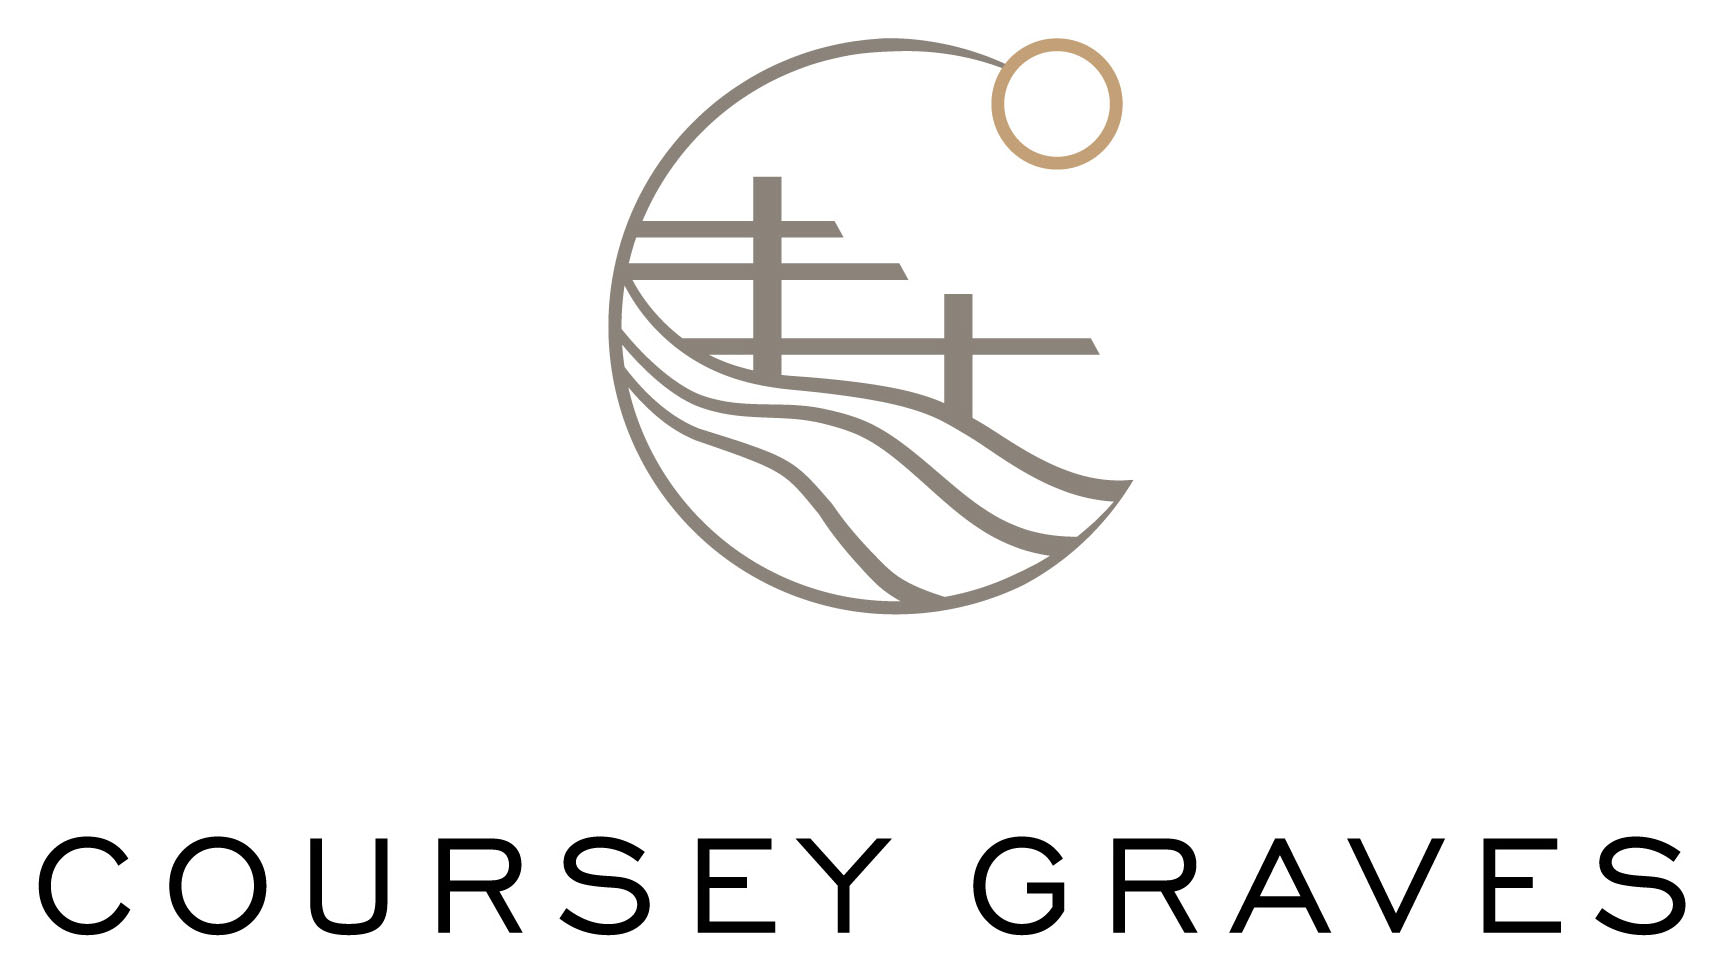 Coursey Graves Logo.jpg